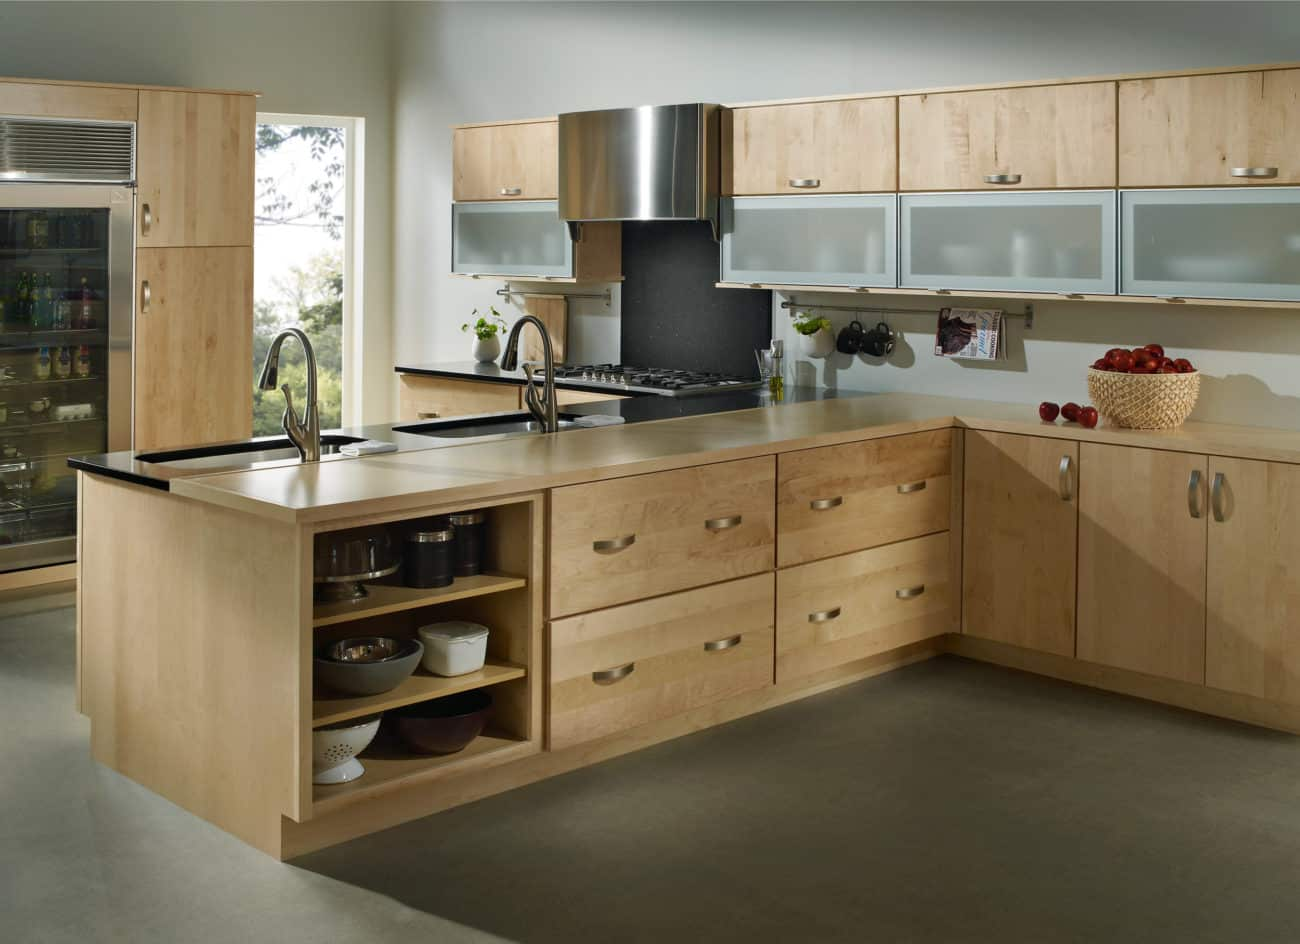 More Cabinets From Aesop S Gables Best Albuquerque Cabinets Aesop S